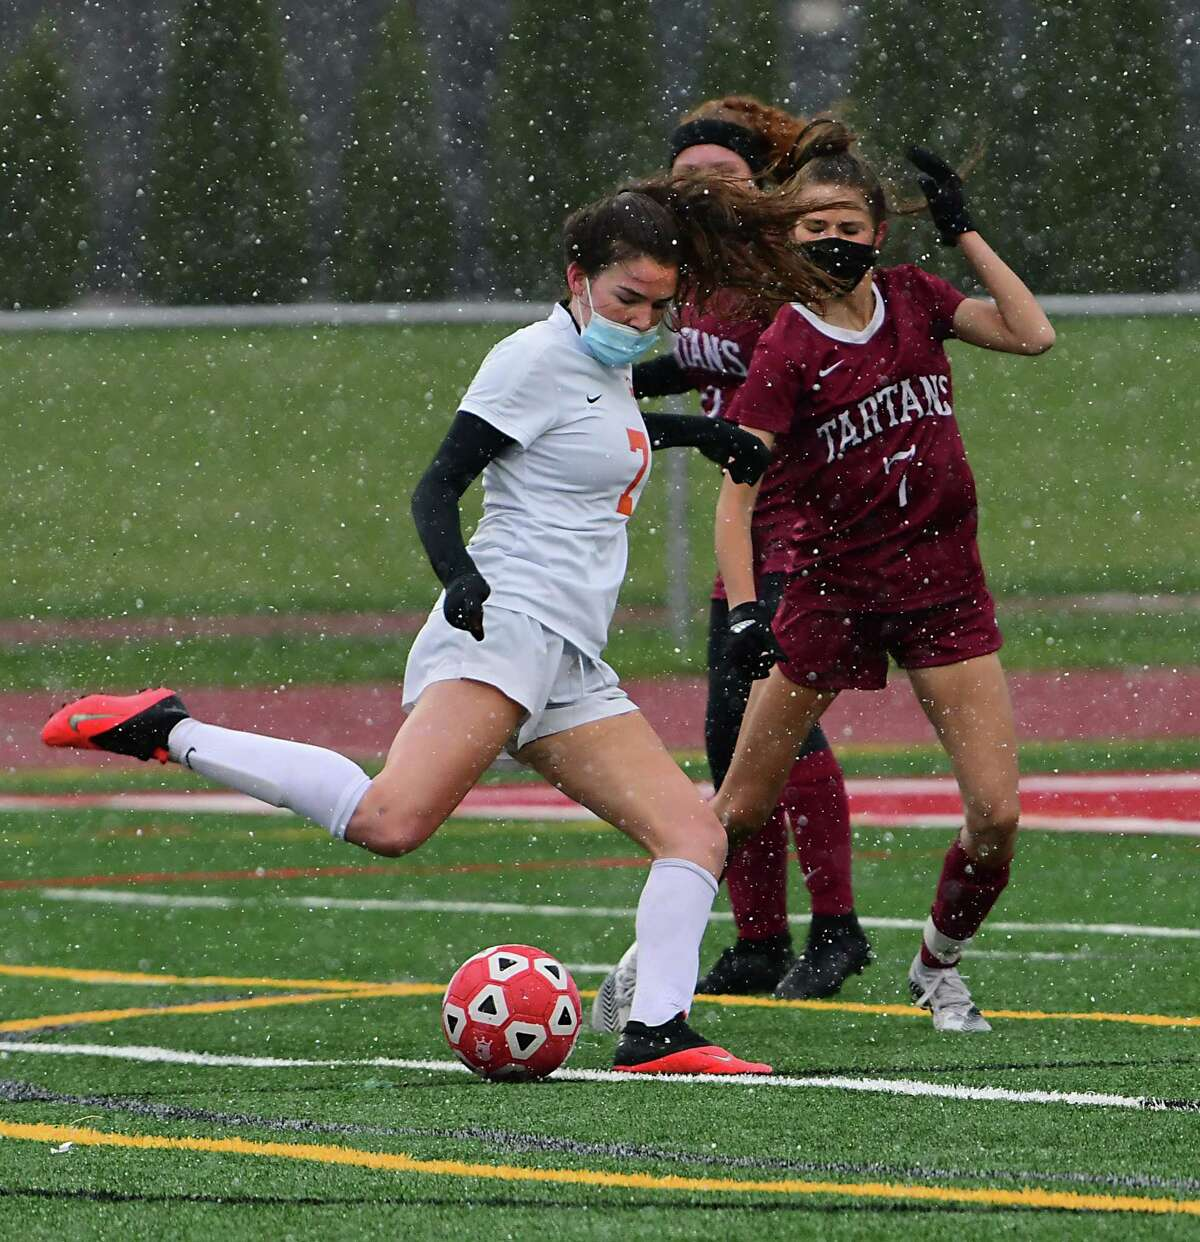 Bethlehem's Katie Sellers scores against Scotia-Glenville during a soccer game on Wednesday, April 21, 2021 in Scotia, N.Y. (Lori Van Buren/Times Union)